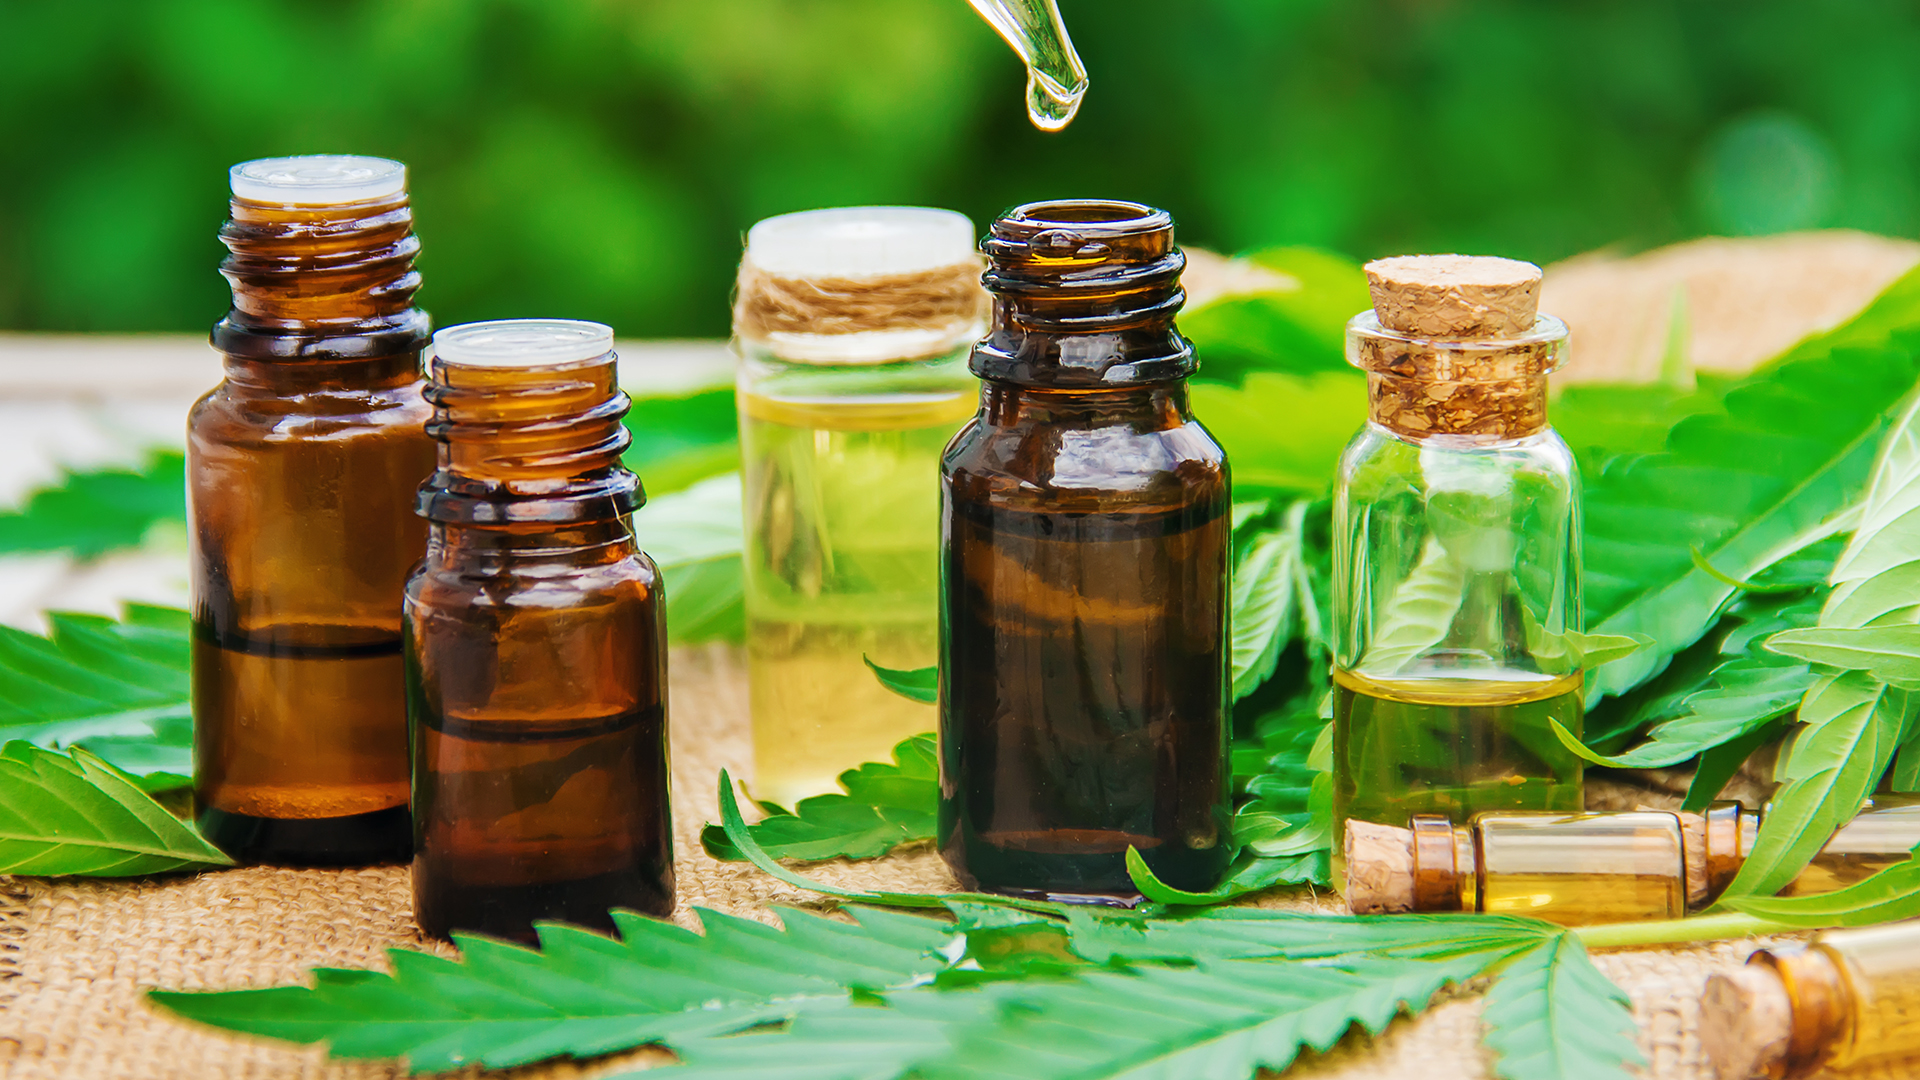 CBD oil (CBD Öl) acts in the body as an antipsychotic and is a neuroprotective element